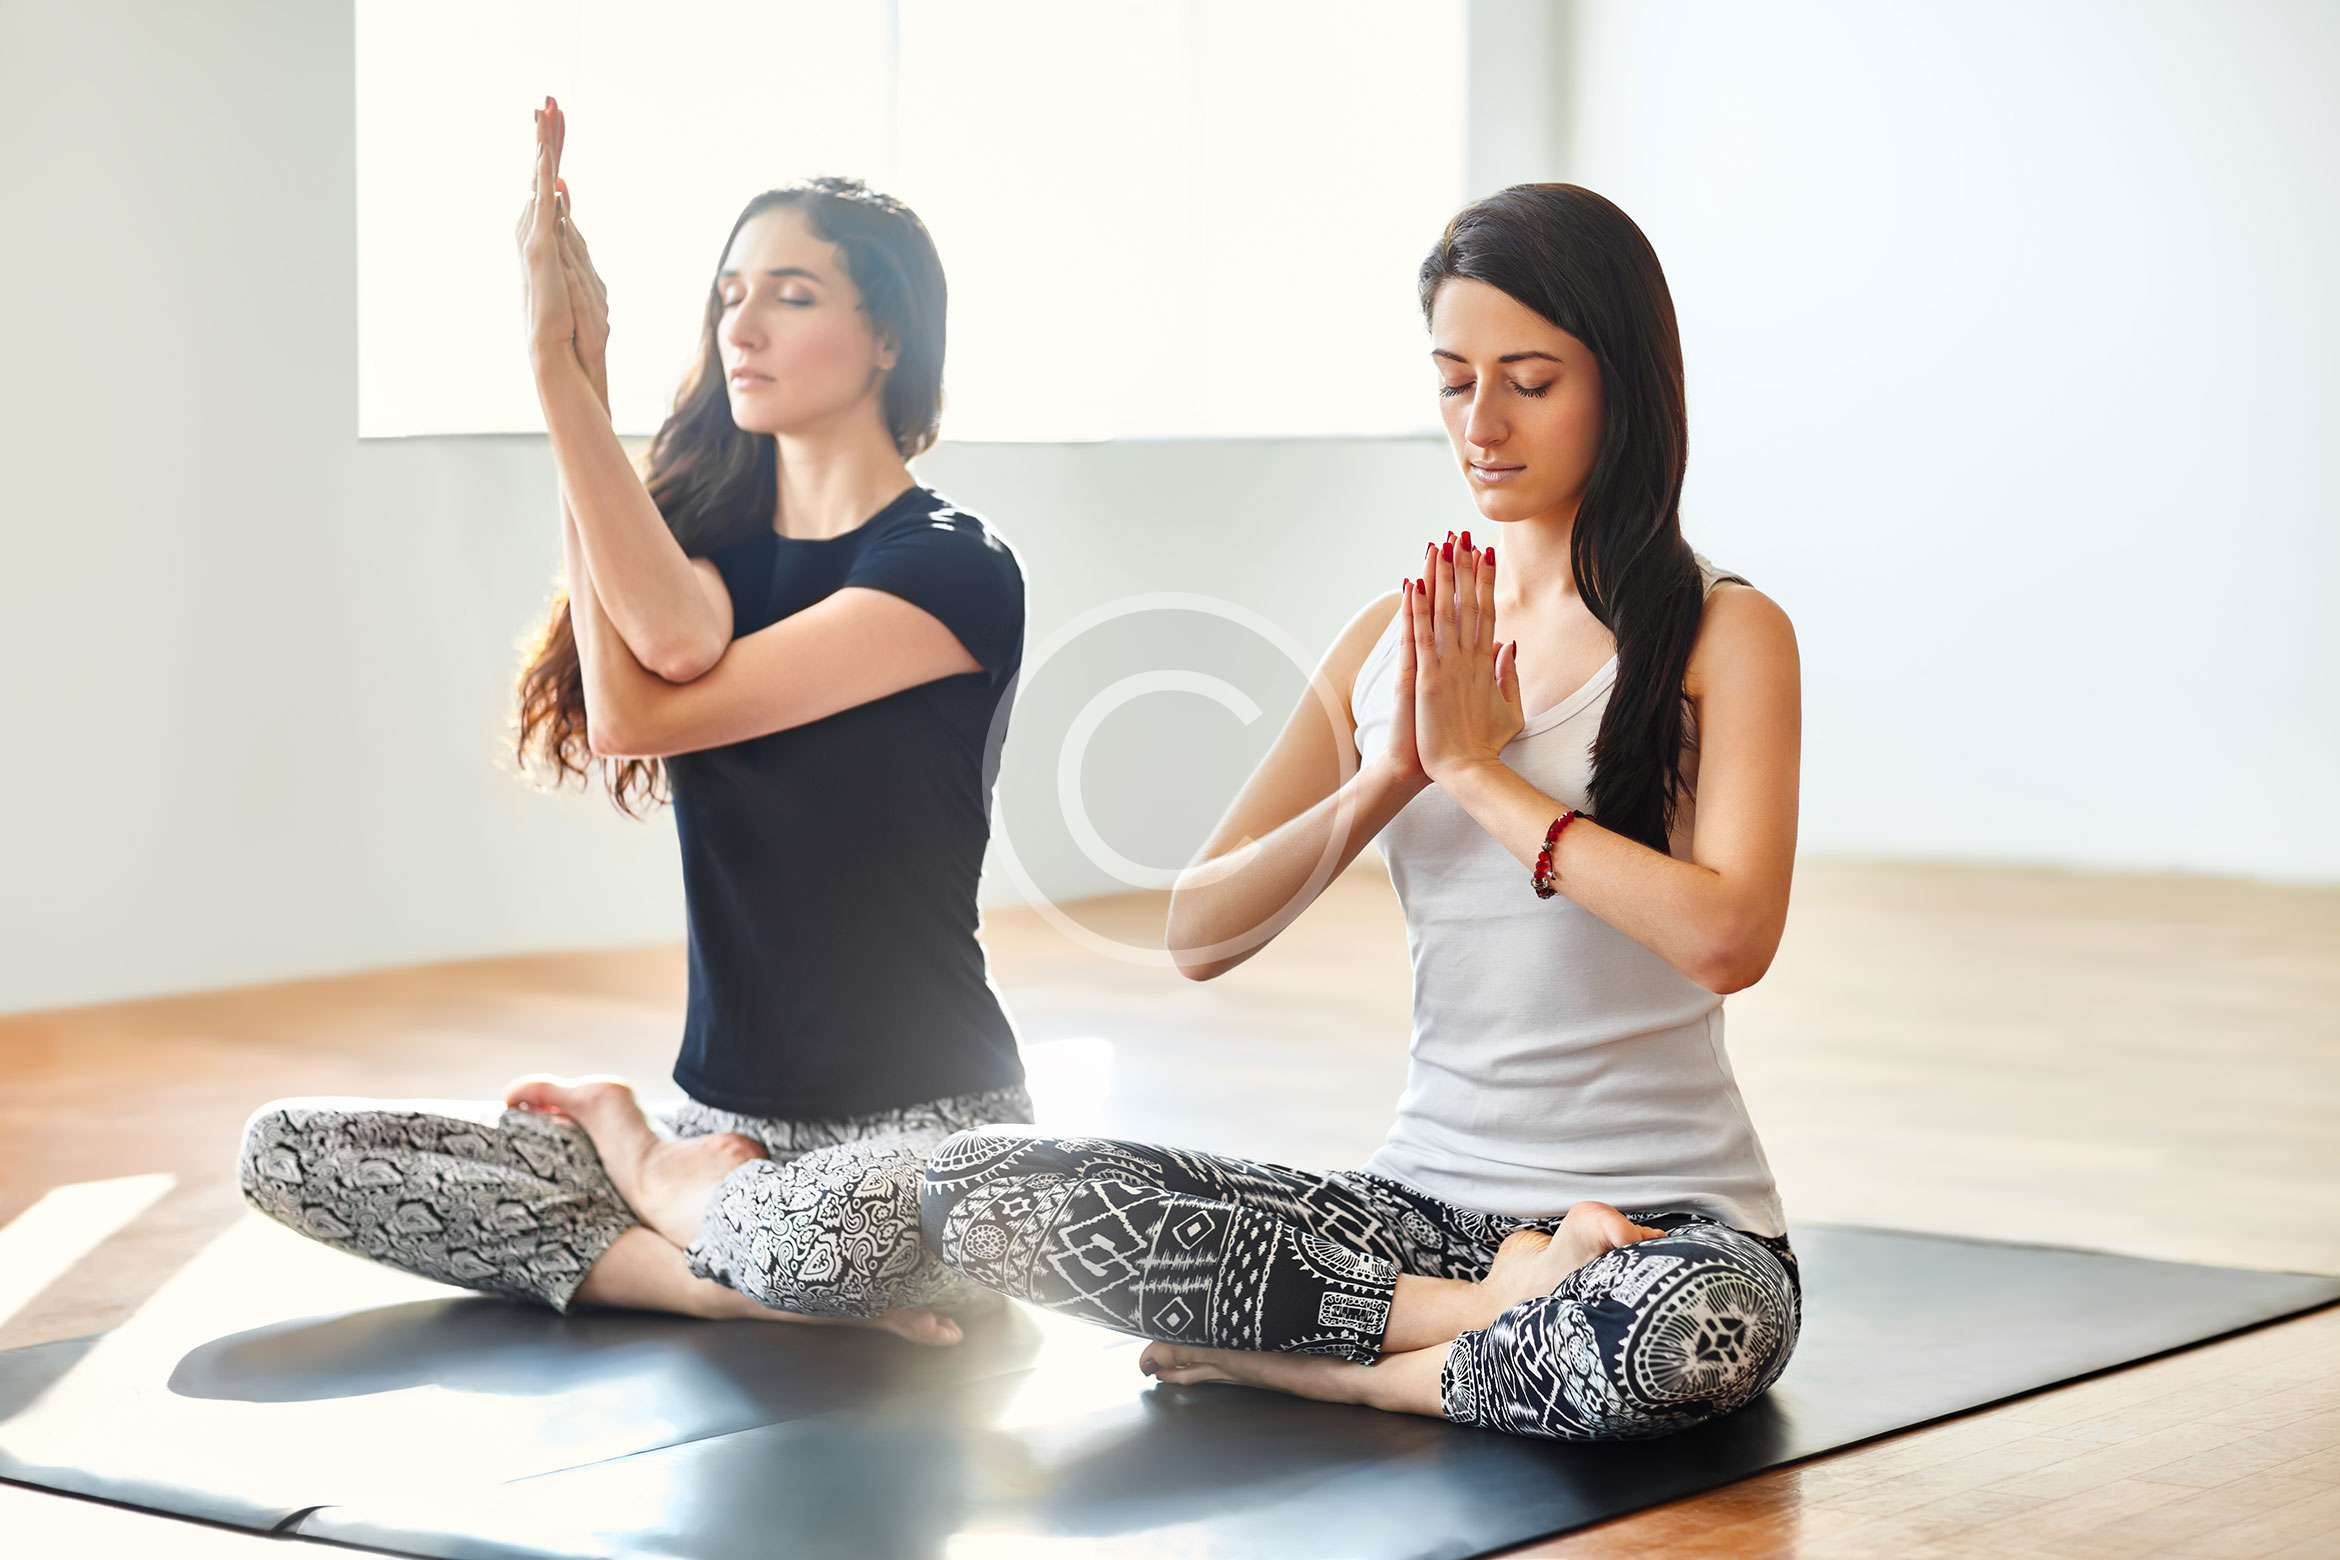 10 Reasons to Make Time For Yoga When You're Too Busy